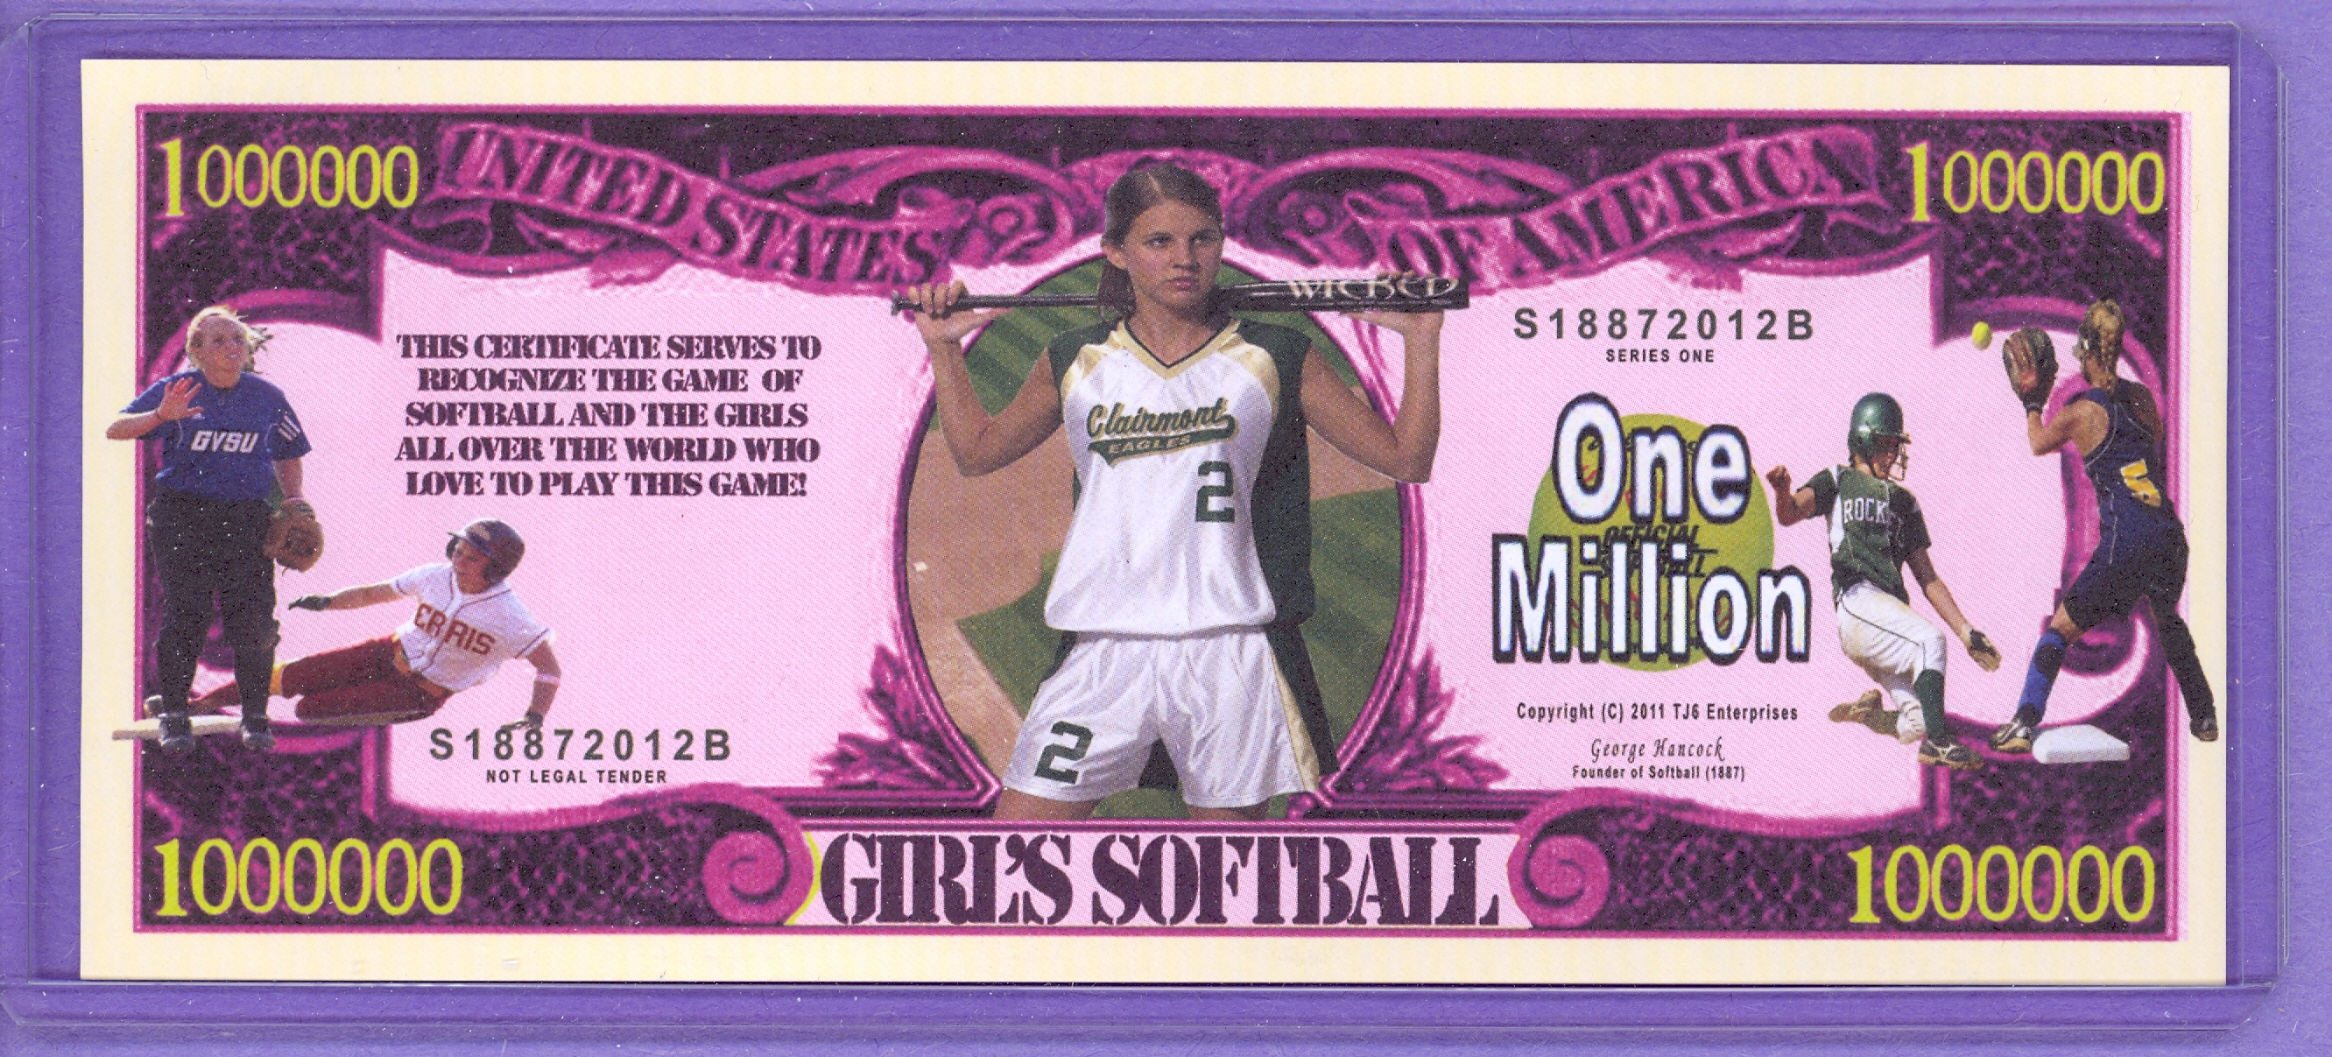 Girl's Softball $1,000,000 Novelty Note